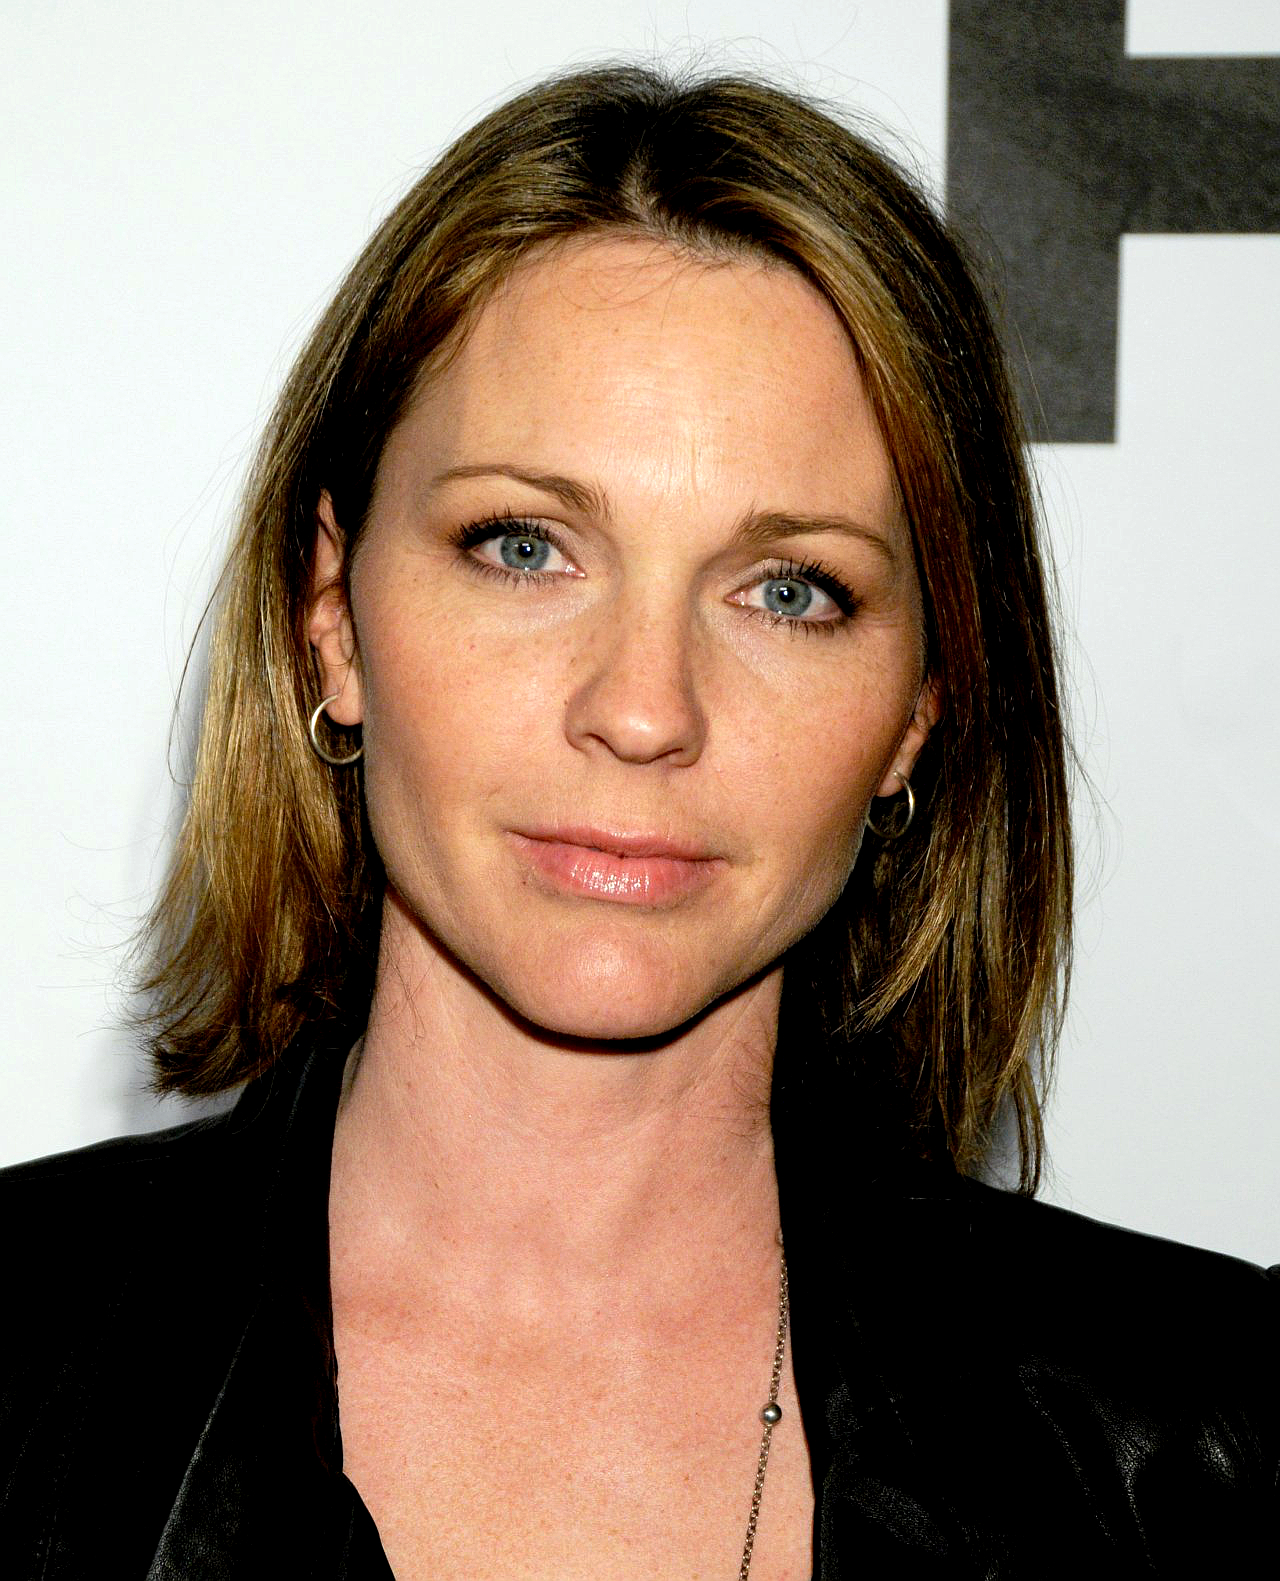 The 46-year old daughter of father John Williams and mother Shannon Wilcox, 165 cm tall Kelli Williams in 2017 photo